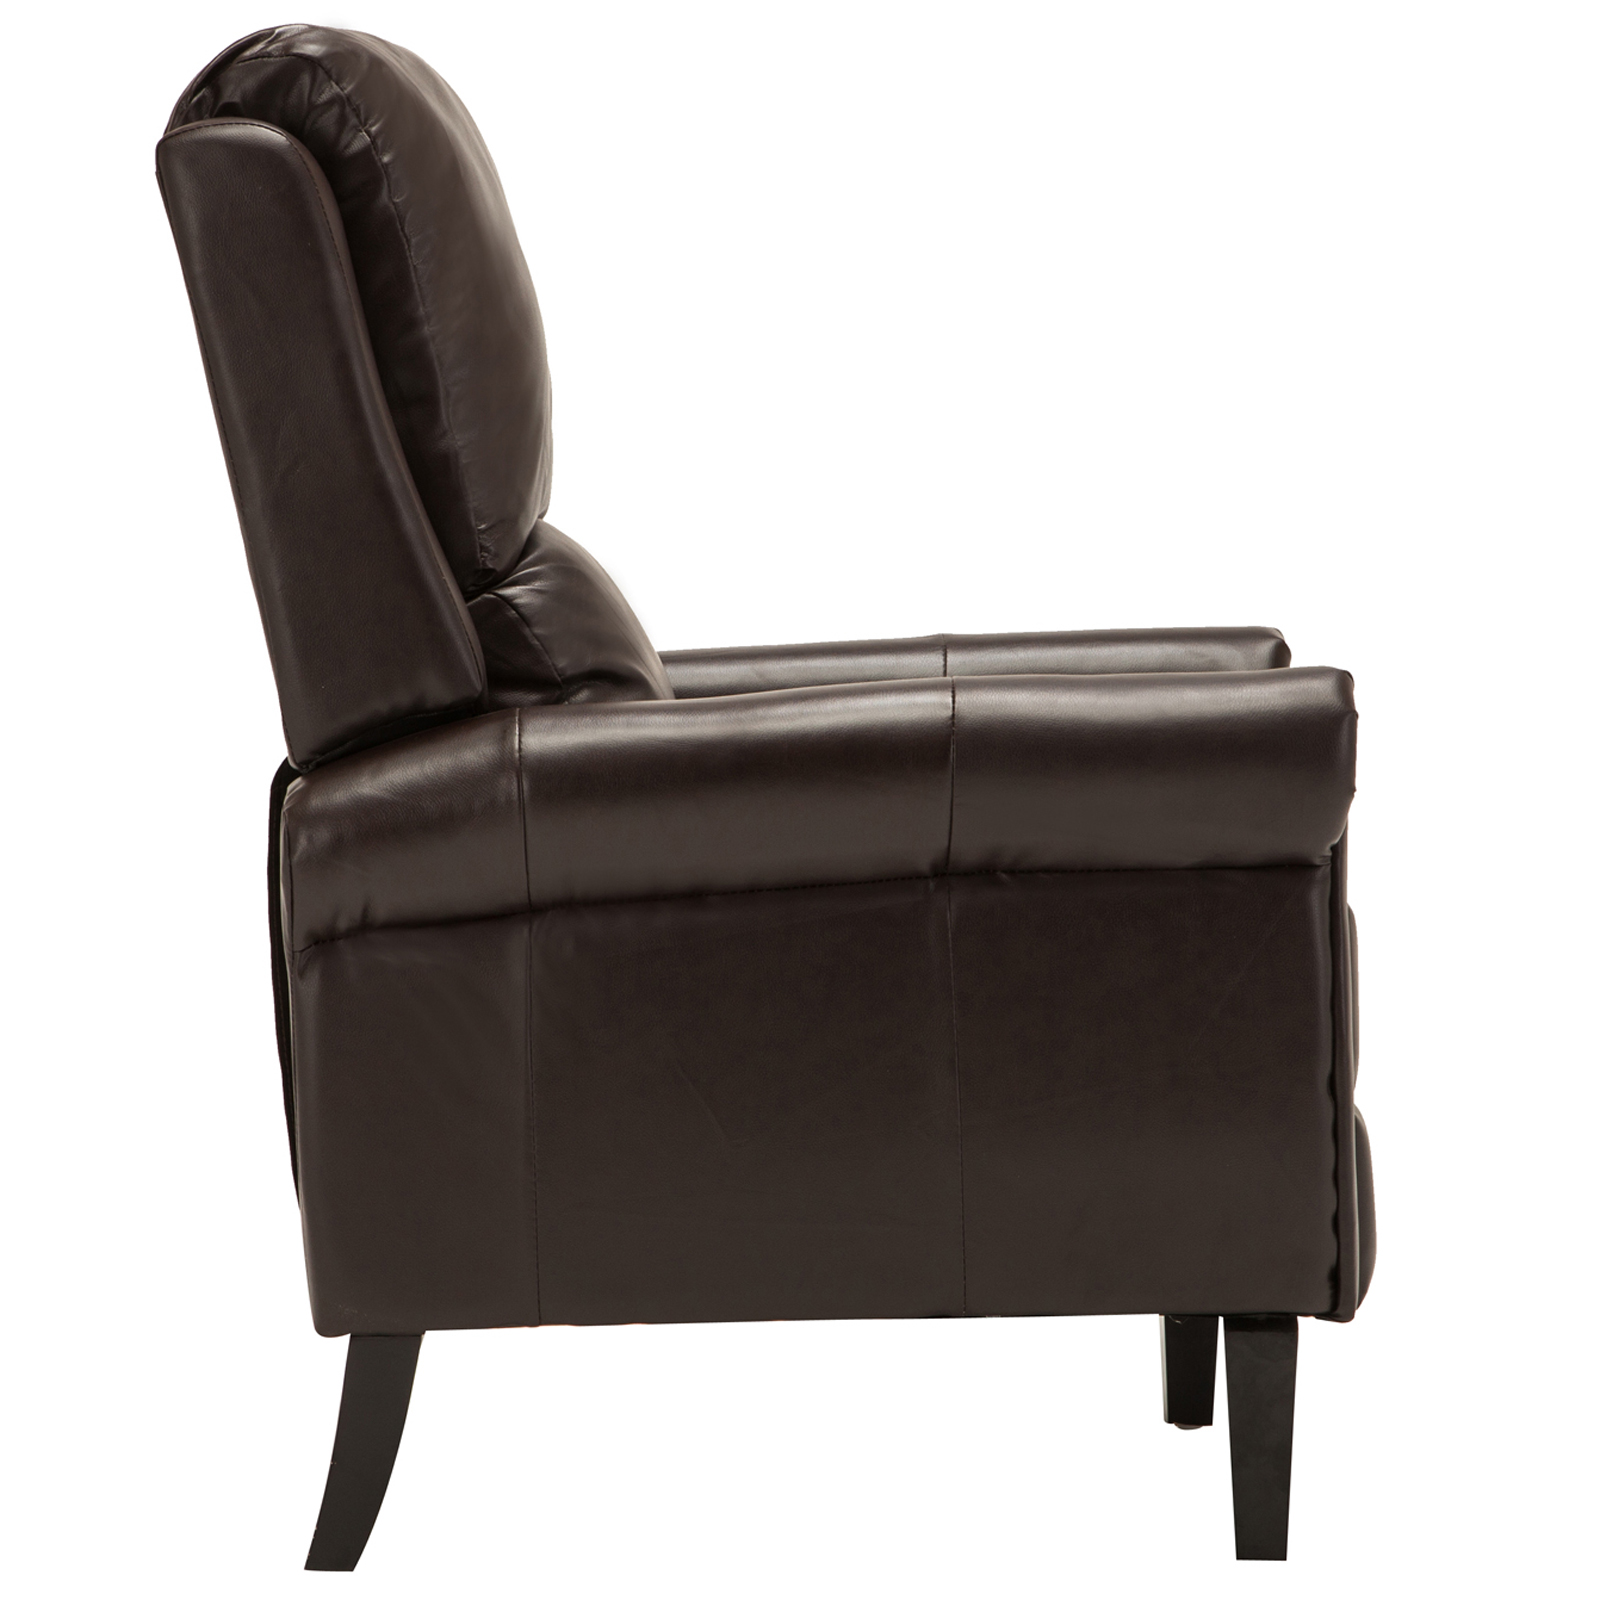 brown leather recliner armchair accent chair w leg rest living room